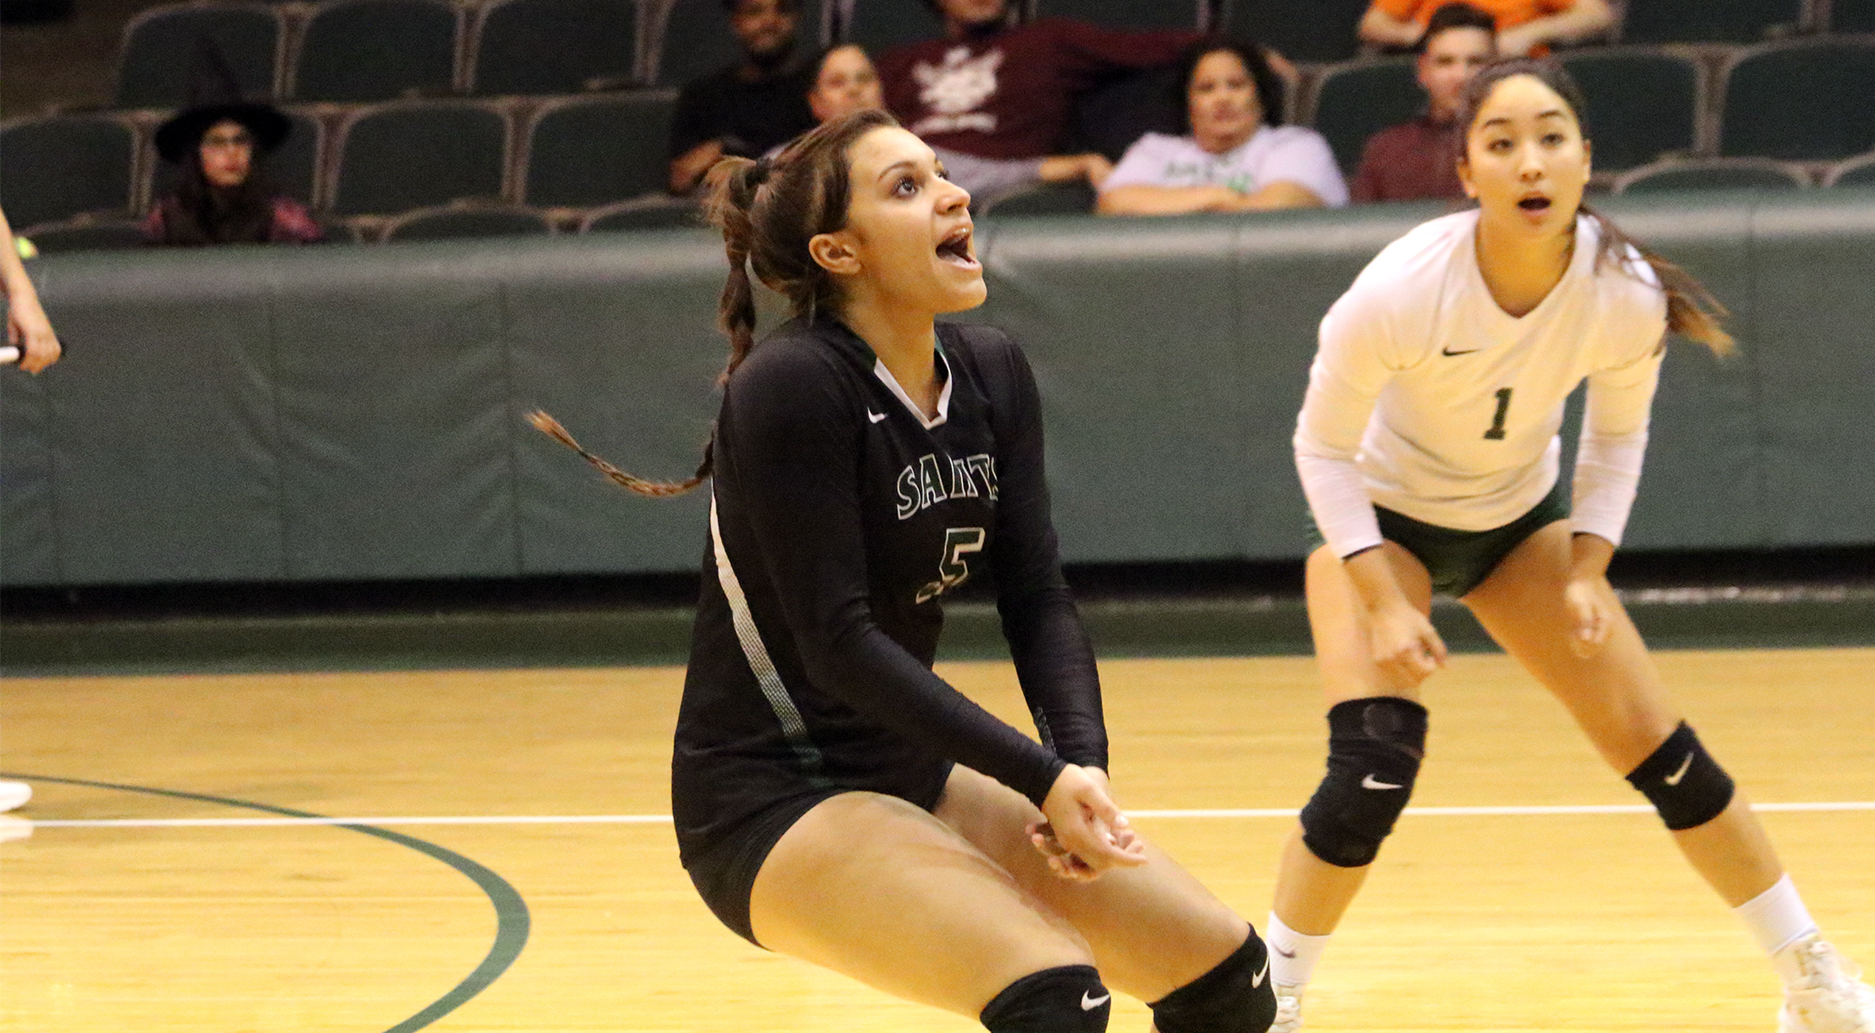 Lady Saints Volleyball Advances to Region VI Semifinals